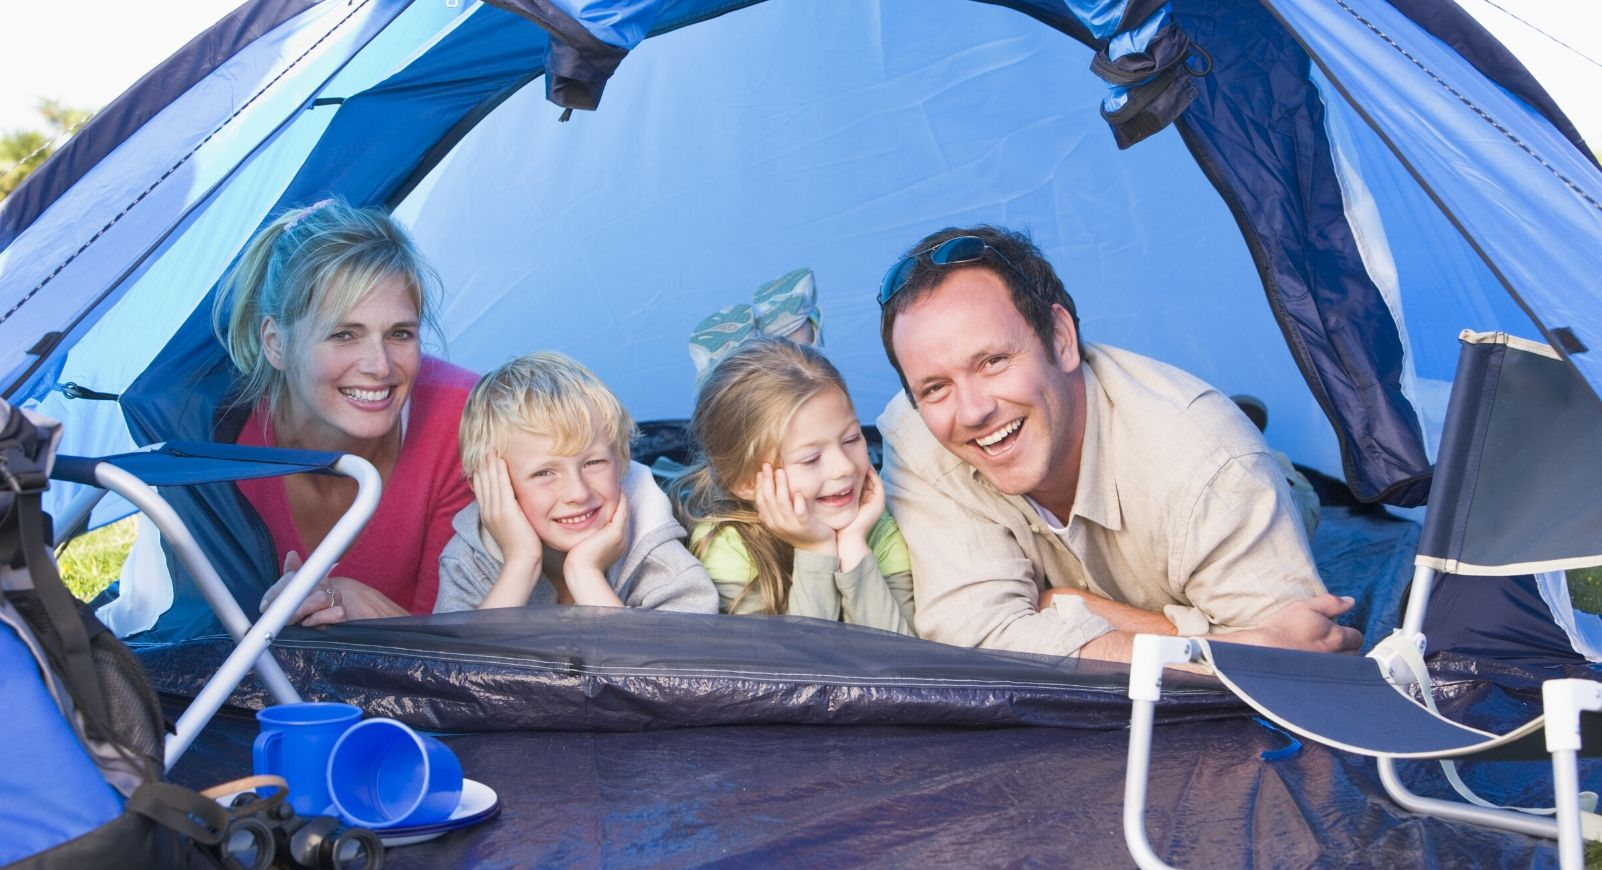 Family in blue tent